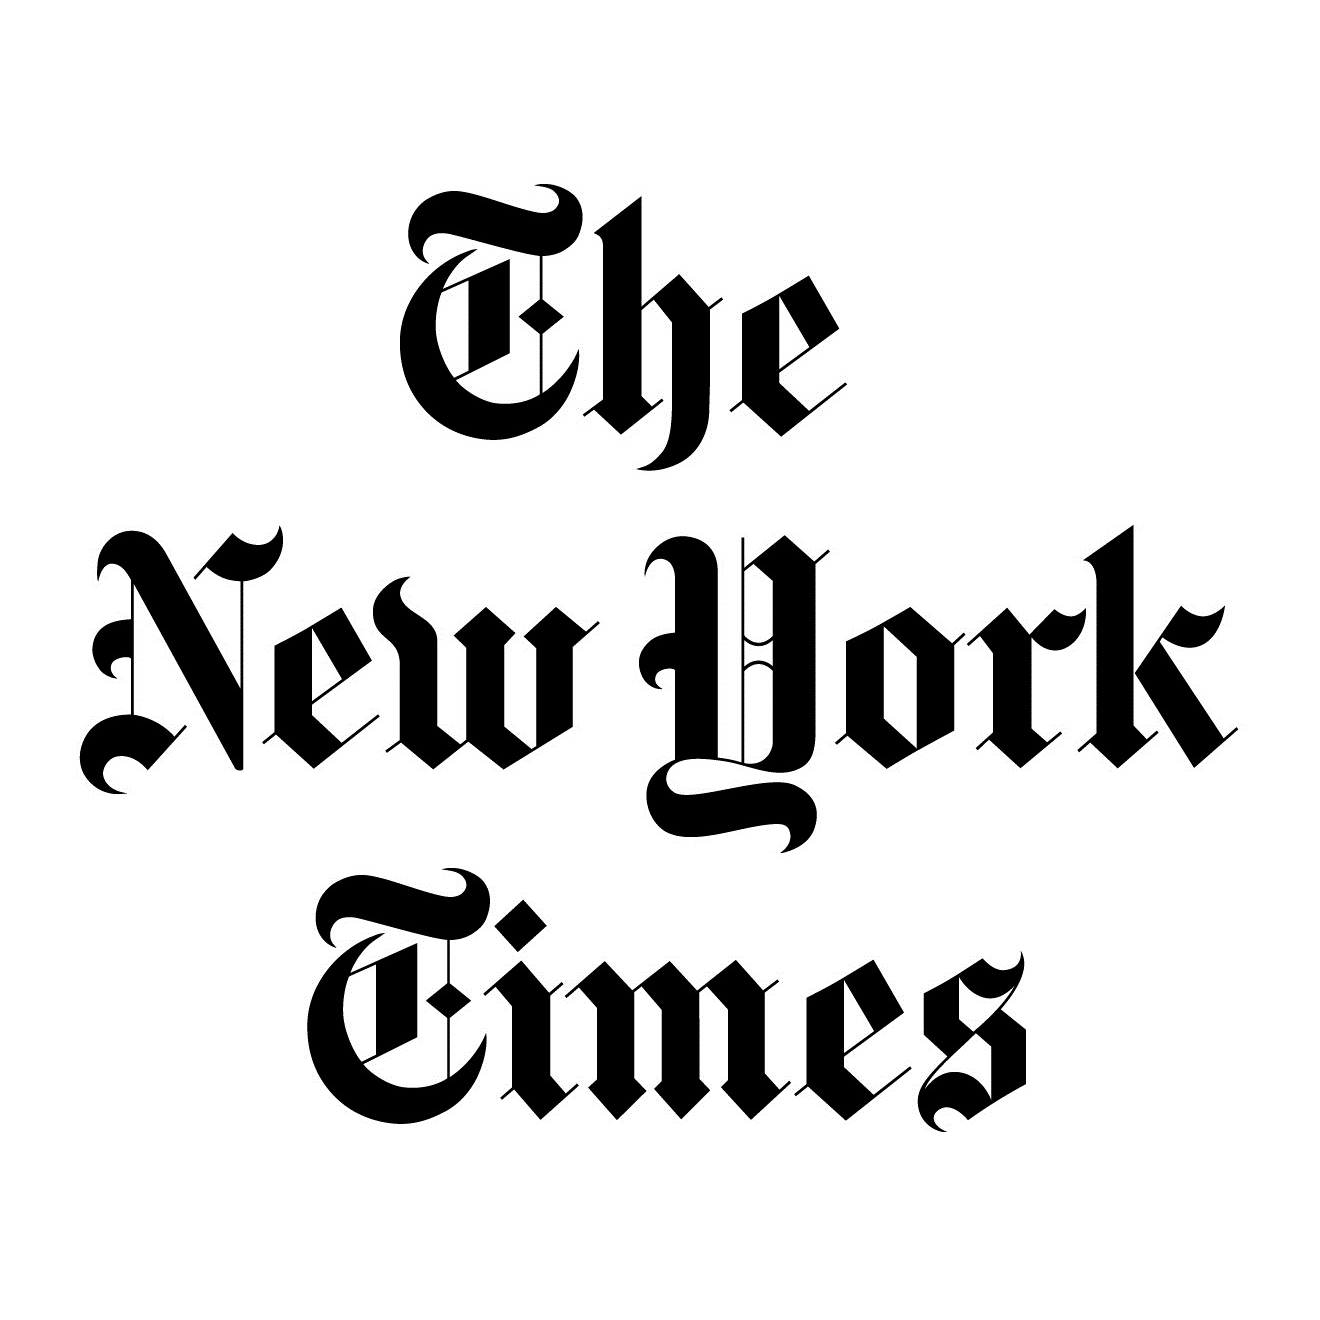 nytimes-logo-png-the-new-york-times-international-weekly-brands-of-the-world-1320.png